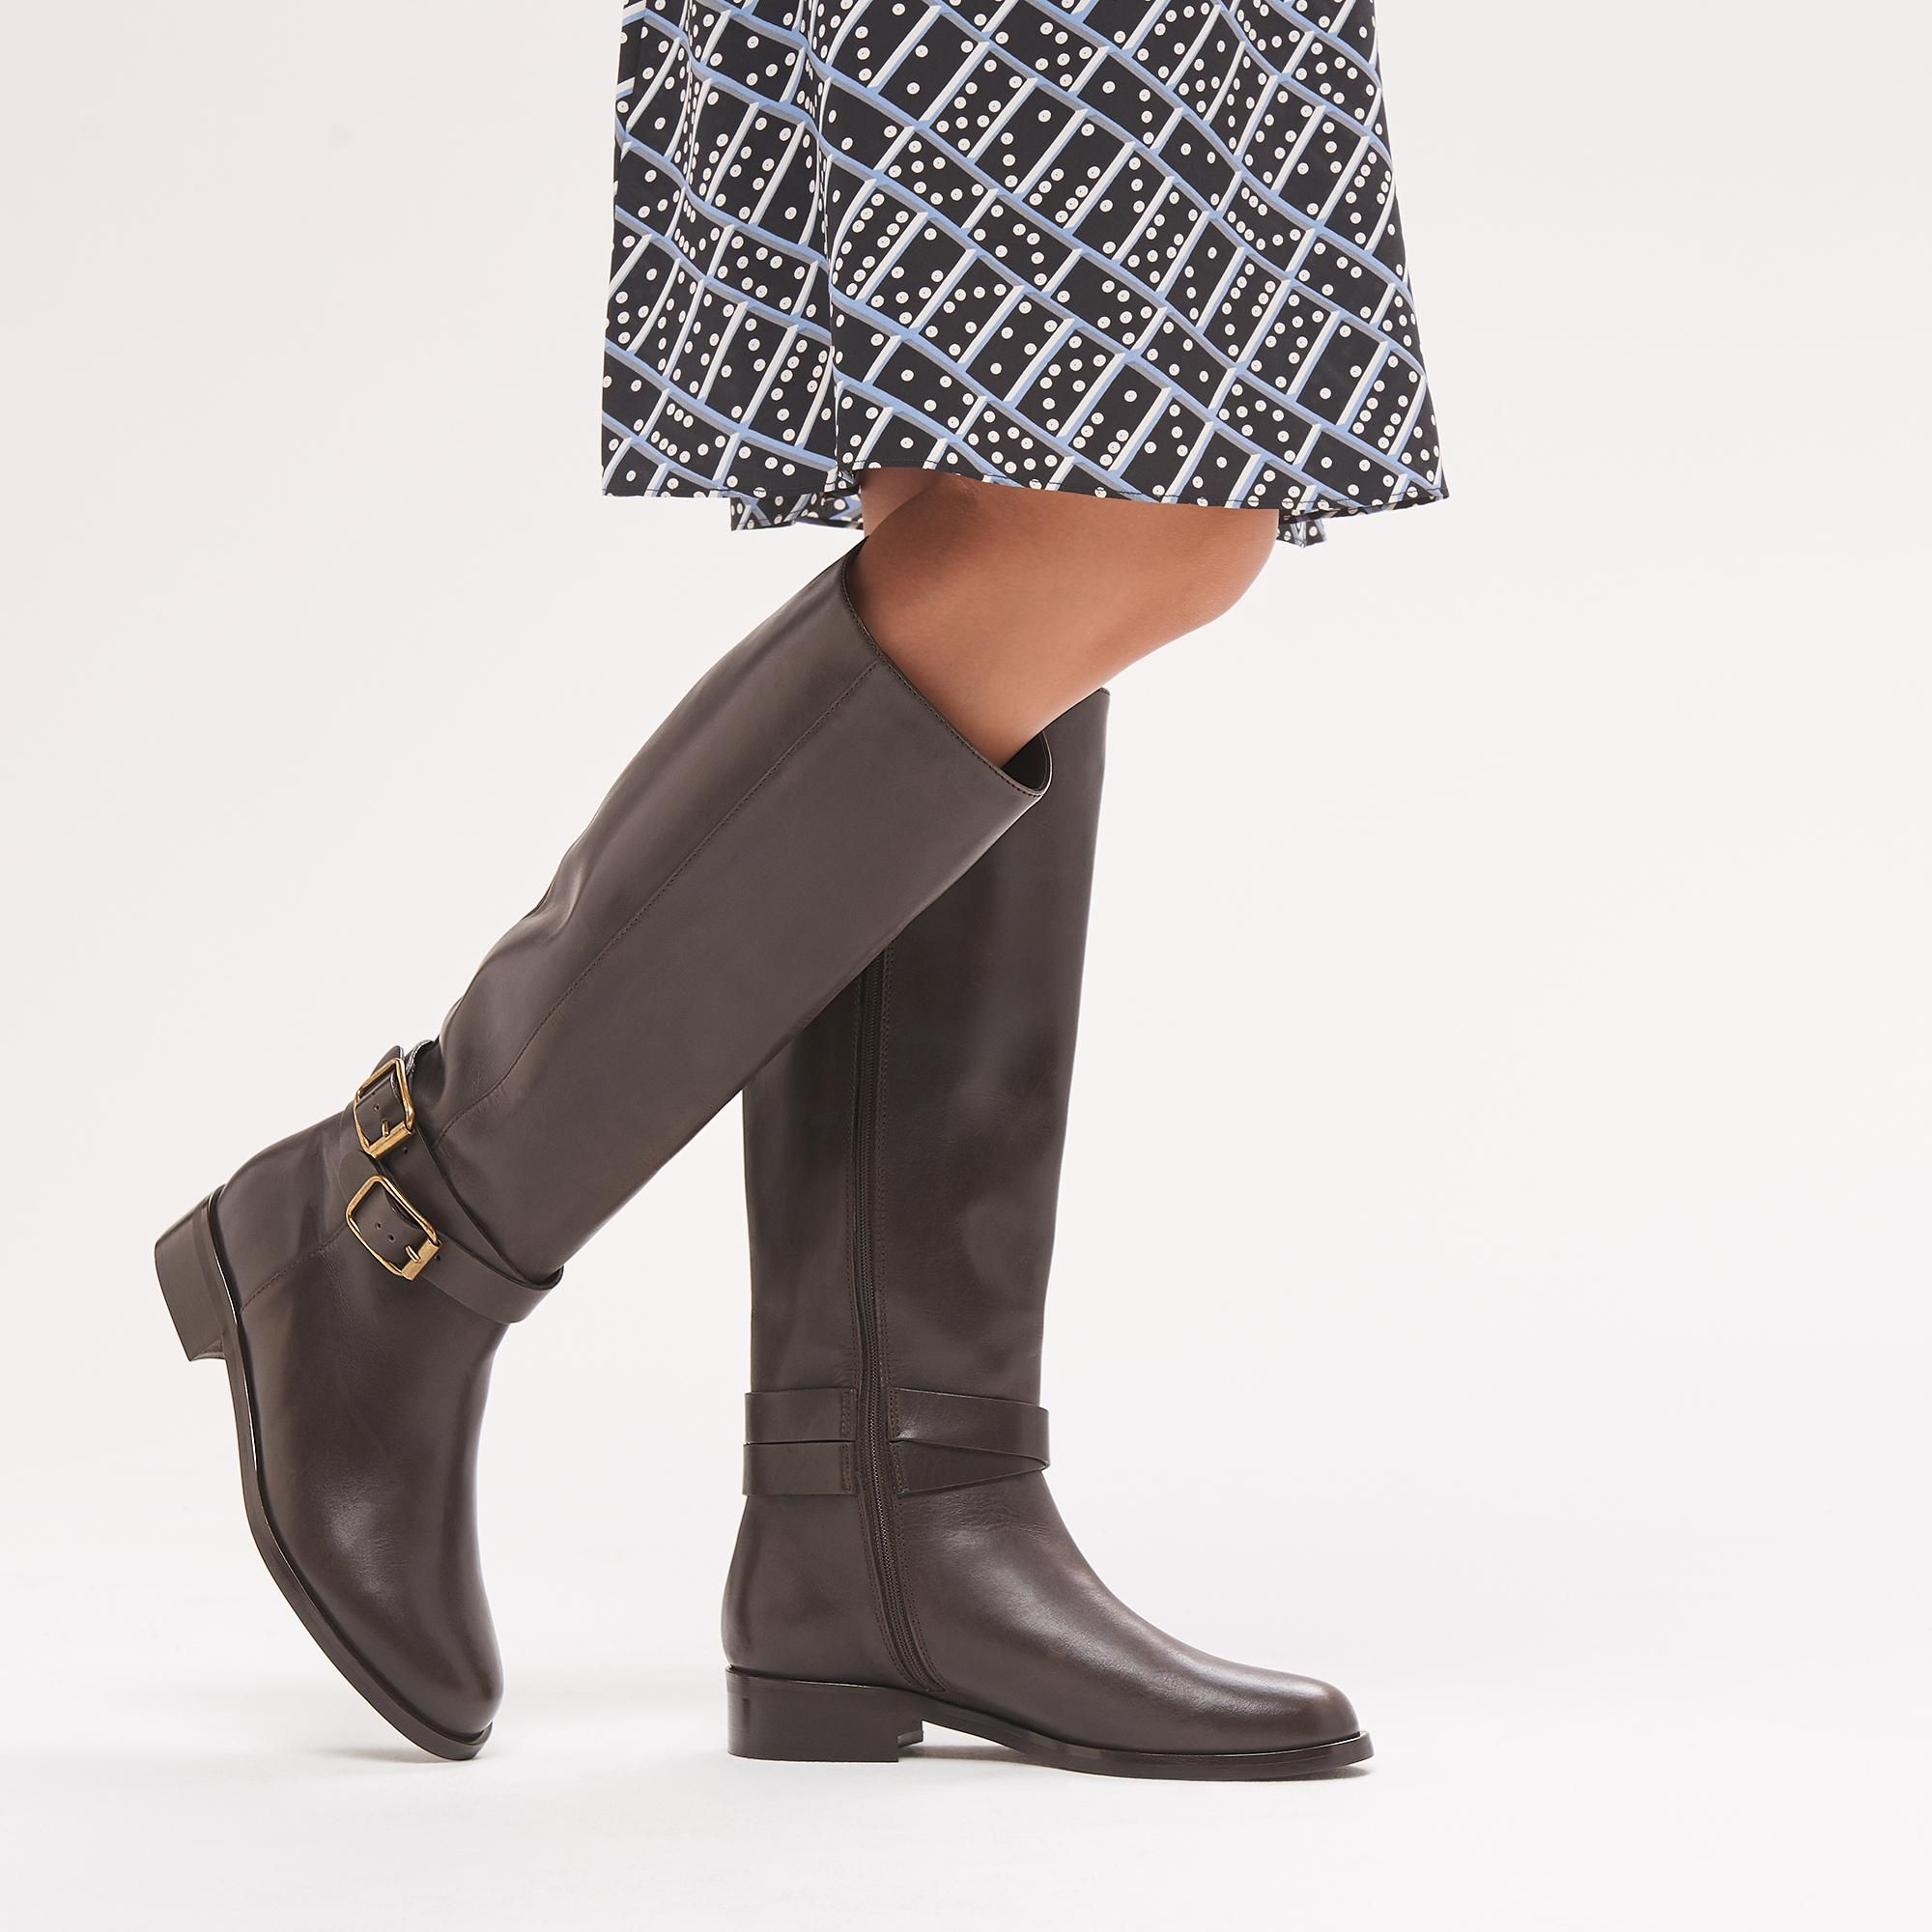 ef3e989892df Brogan Brown Leather Knee Boots